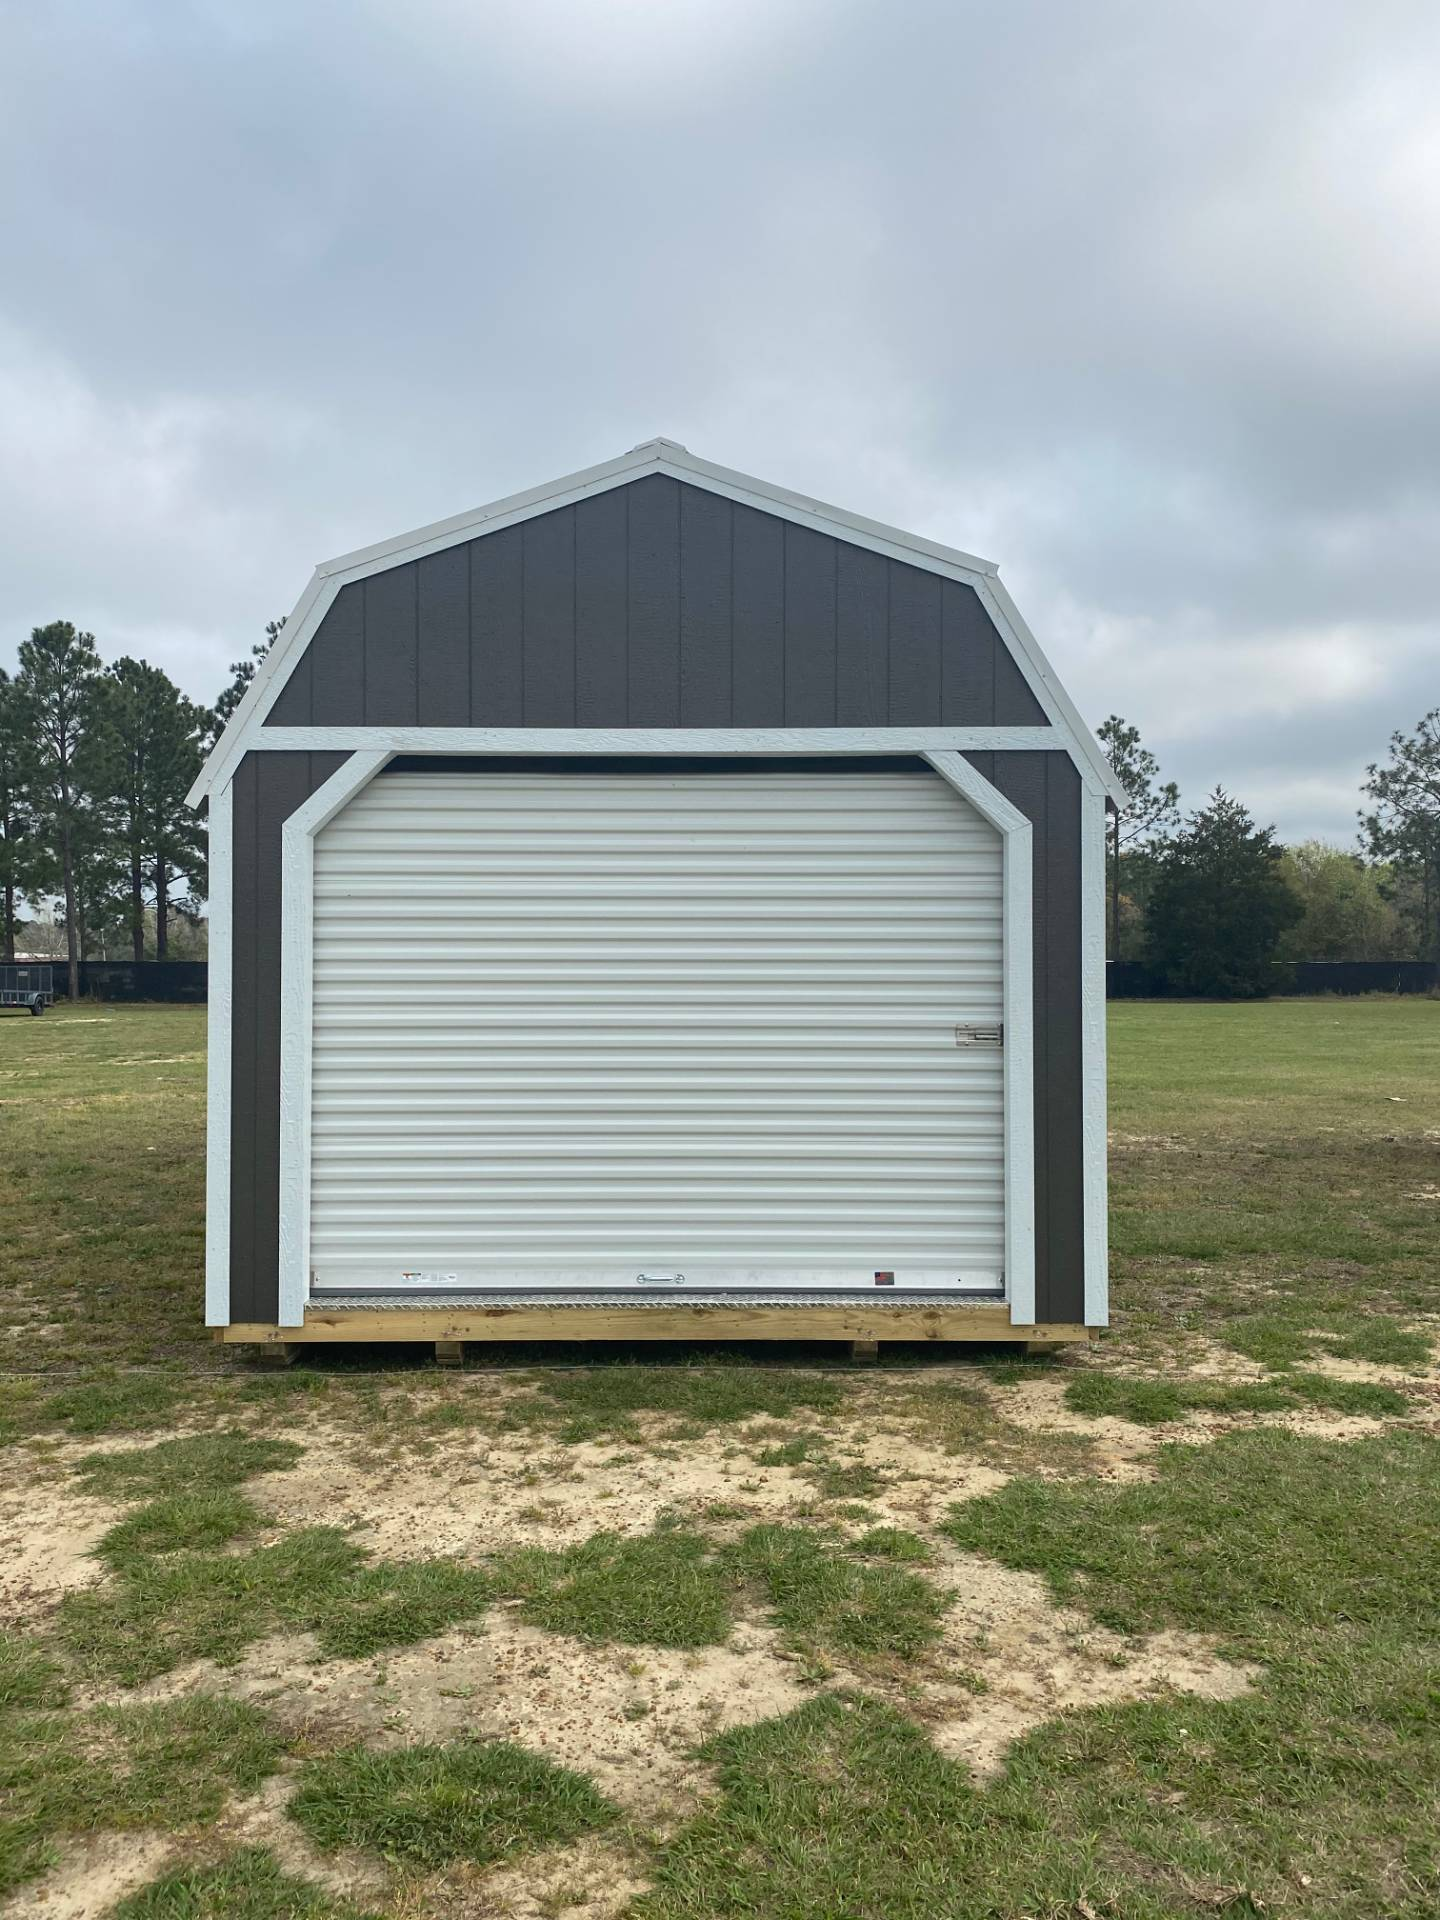 2019 PREMIER PORTABLE BUILDINGS ULG - URETHANE SIDE LOFTED GARAGE in Tifton, Georgia - Photo 2